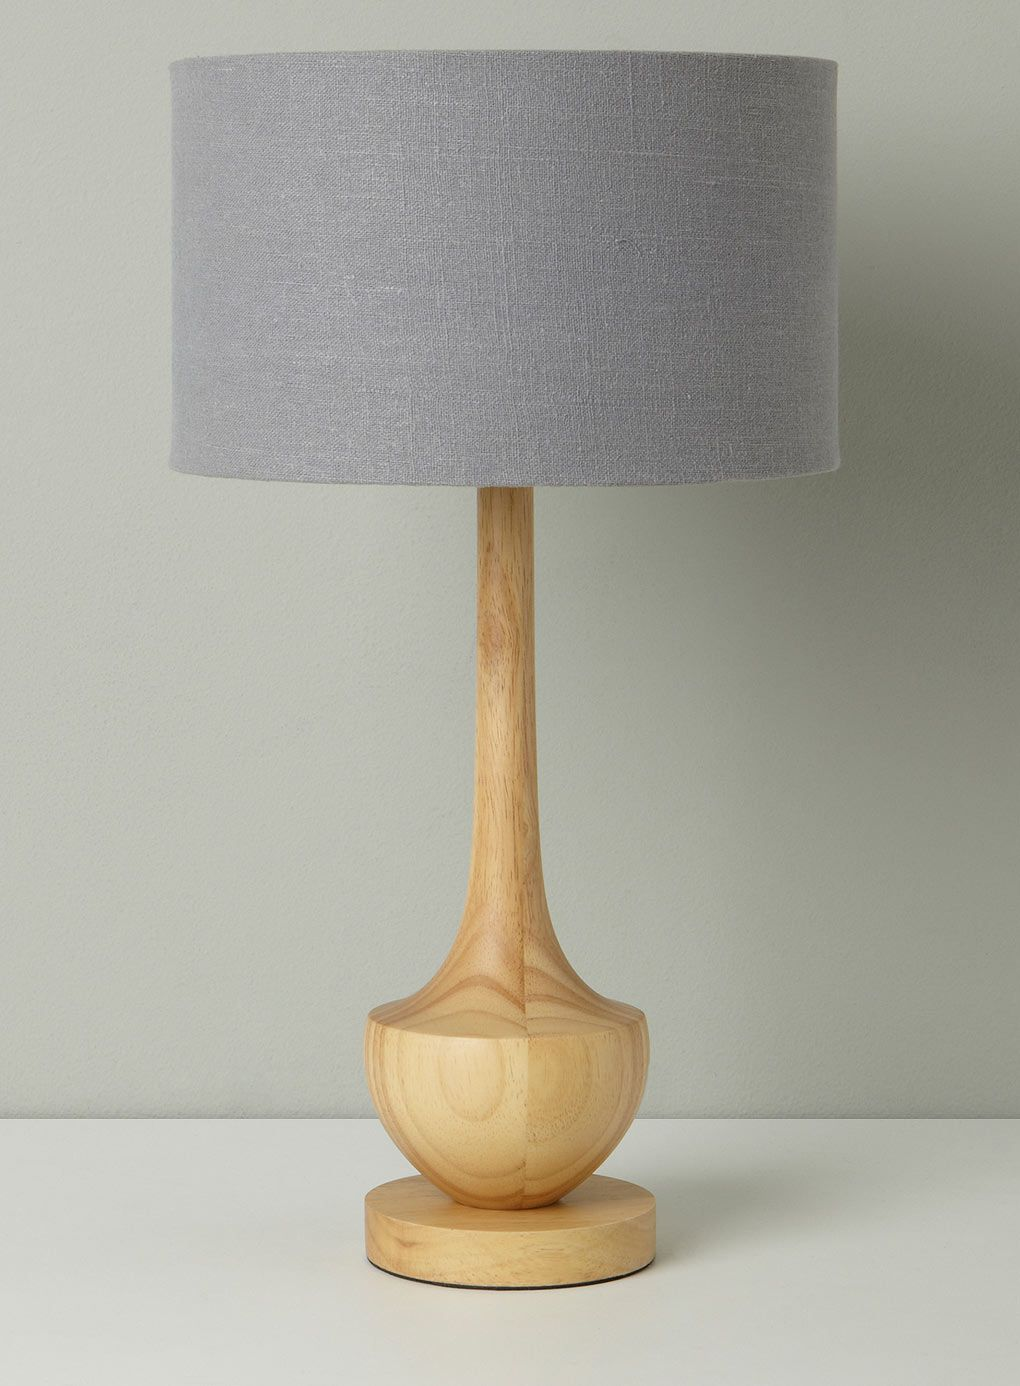 Wood rowan table lamp lighting for the home bhs lighting wood rowan table lamp lighting for the home bhs mozeypictures Image collections